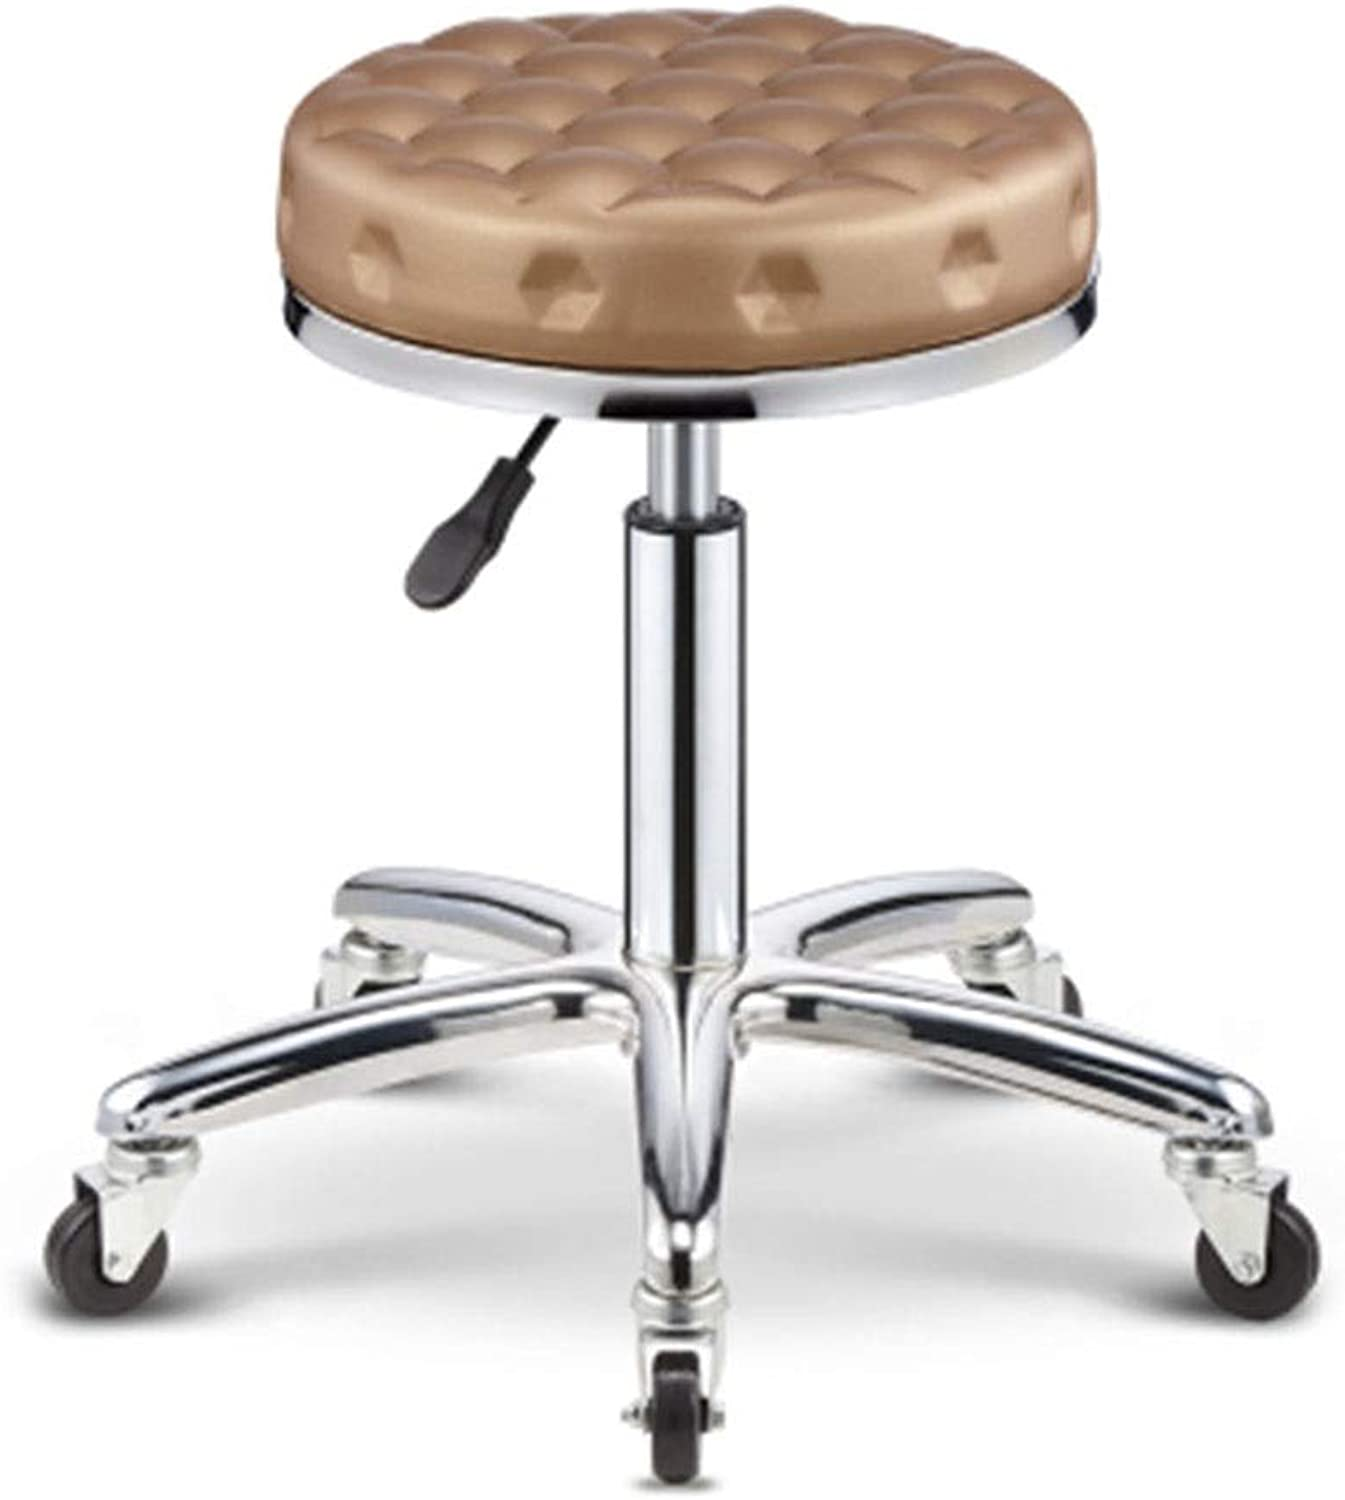 Bar Chair Beauty Stool Barber Chair redate Lifting Stool Work Bench Pulley Round 5 colors 1 Size (color   B)